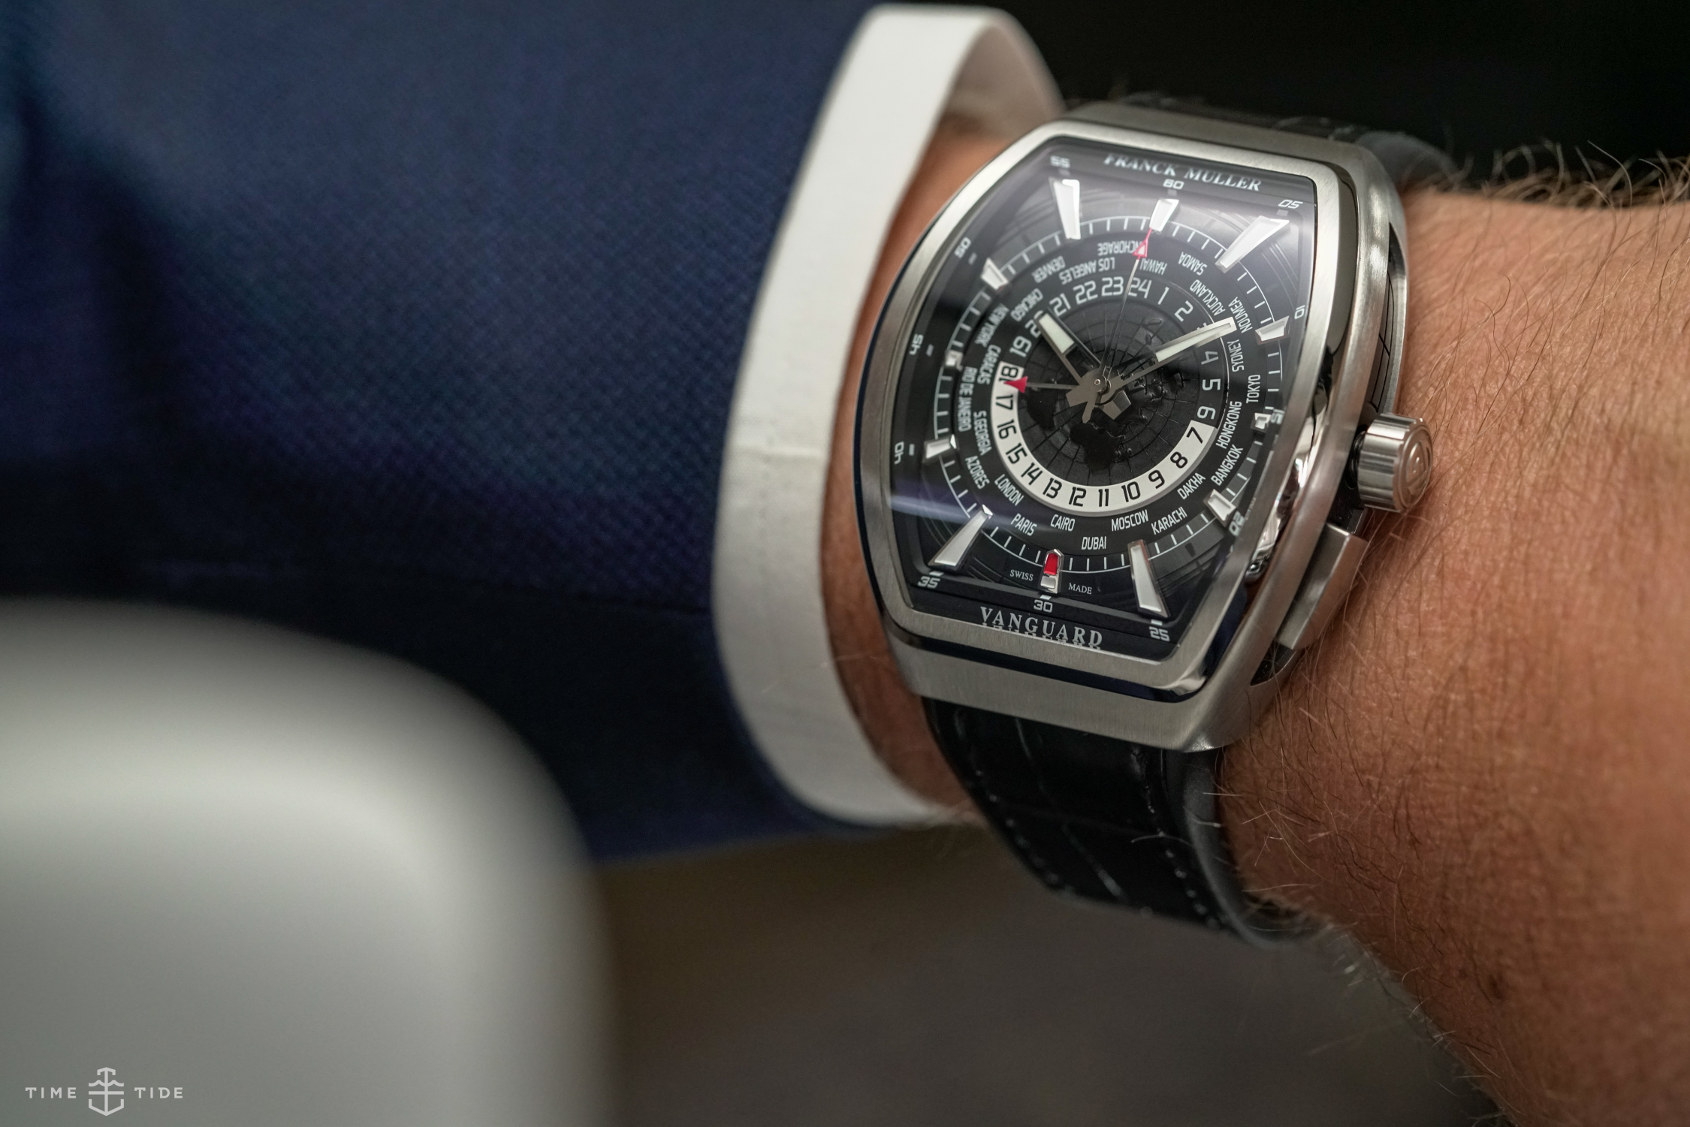 INTRODUCING: This one has the time, now all you need is the jet – the Franck Muller Vanguard World Timer GMT